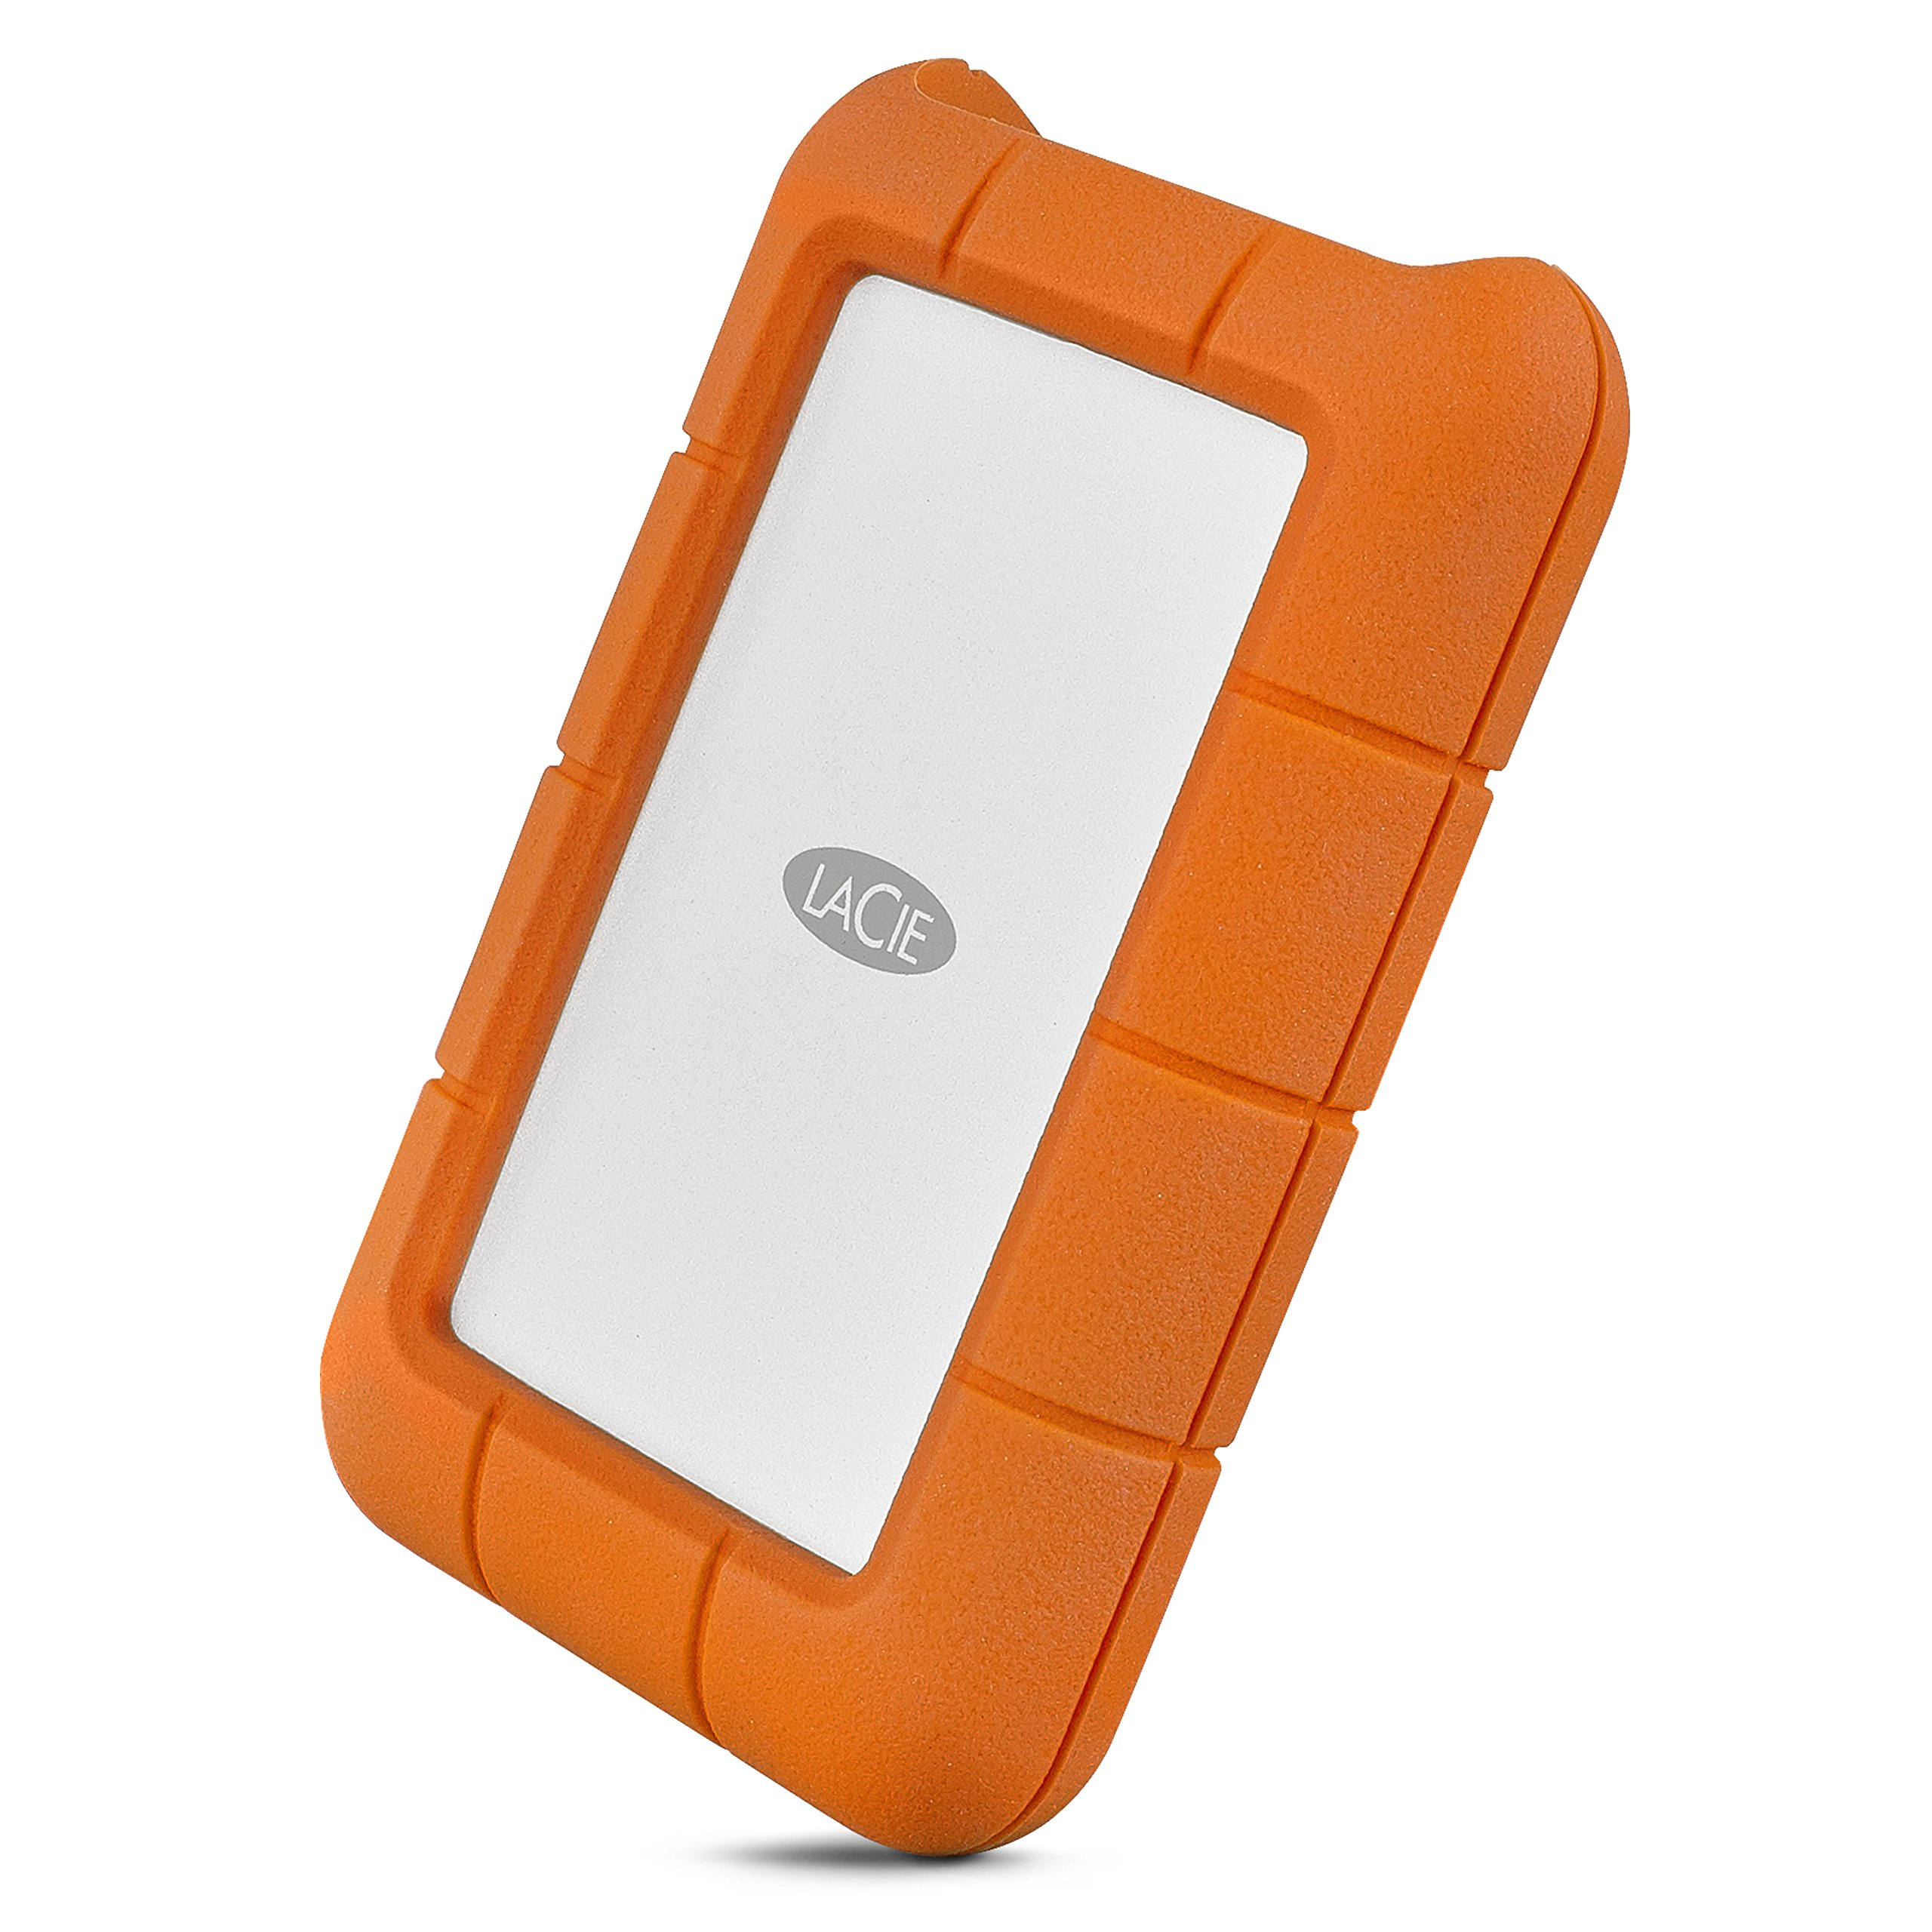 LaCie Rugged USB-C 5TB External Hard Drive Portable HDD - USB 3.0, Drop Shock Dust Rain Resistant Shuttle Drive, for Mac and PC Computer Desktop Workstation Laptop, 1 Month Adobe CC (STFR5000800)